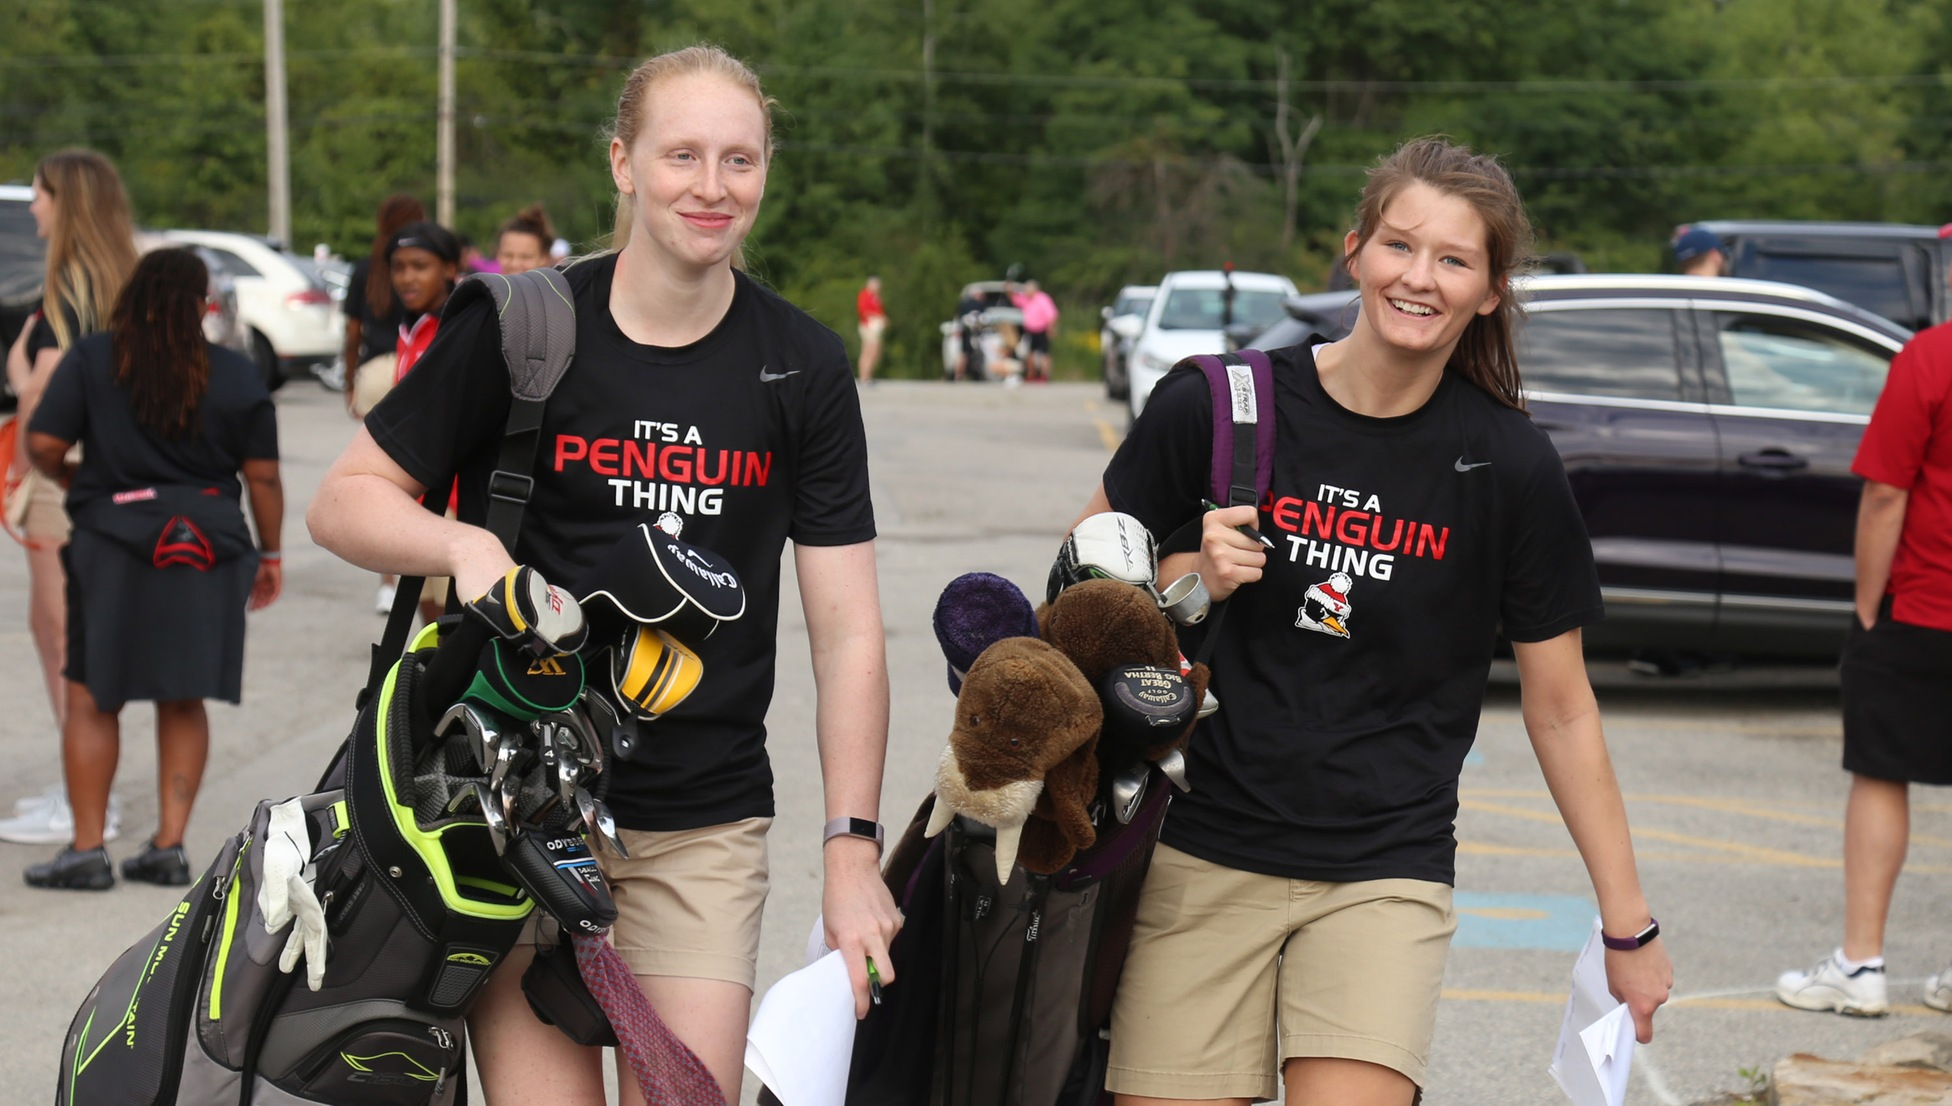 Sarah Cash and Madison Mallory carry golfers' bags prior to the YSU Women's Basketball program's annual golf outing on Aug. 25.